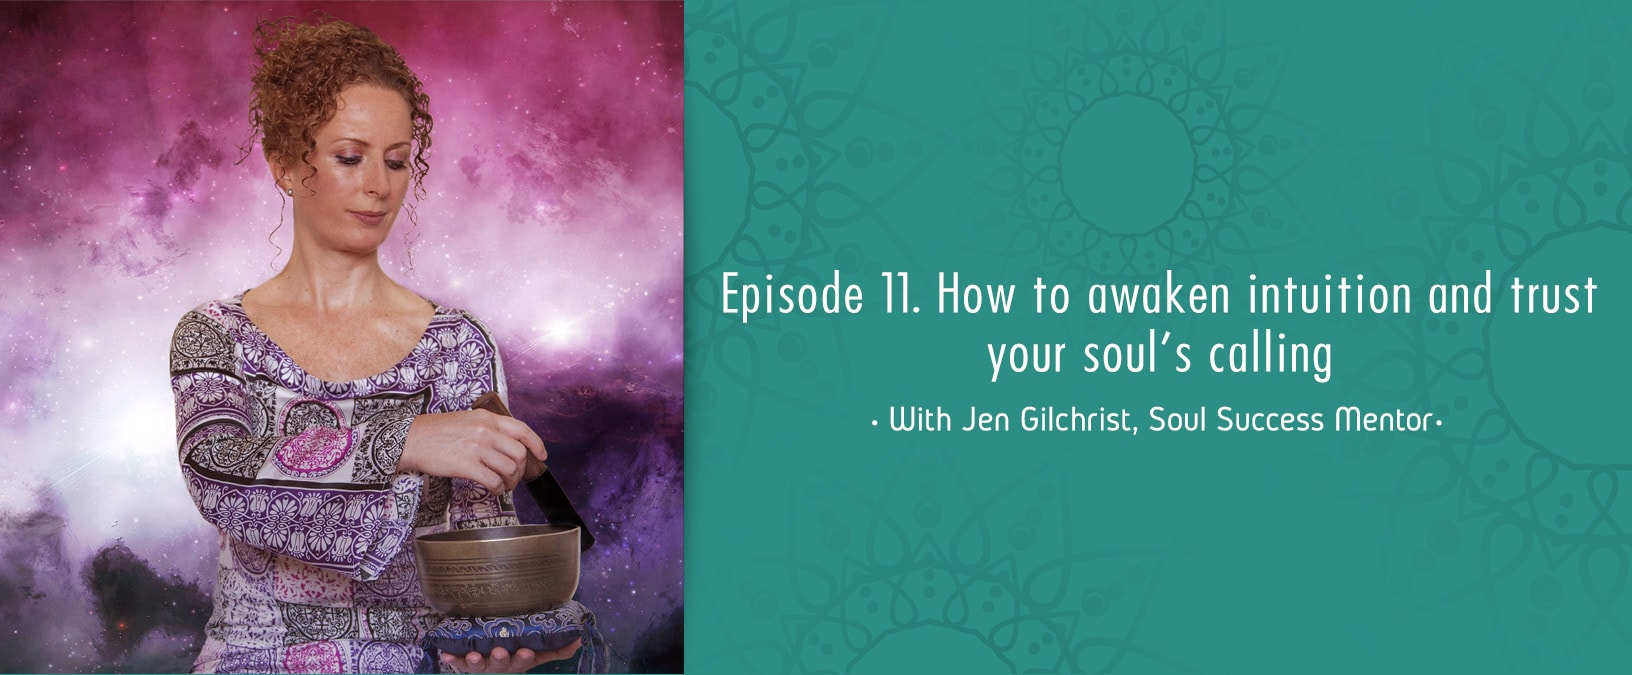 Episode 11. How to awaken intuition and trust your soul's calling